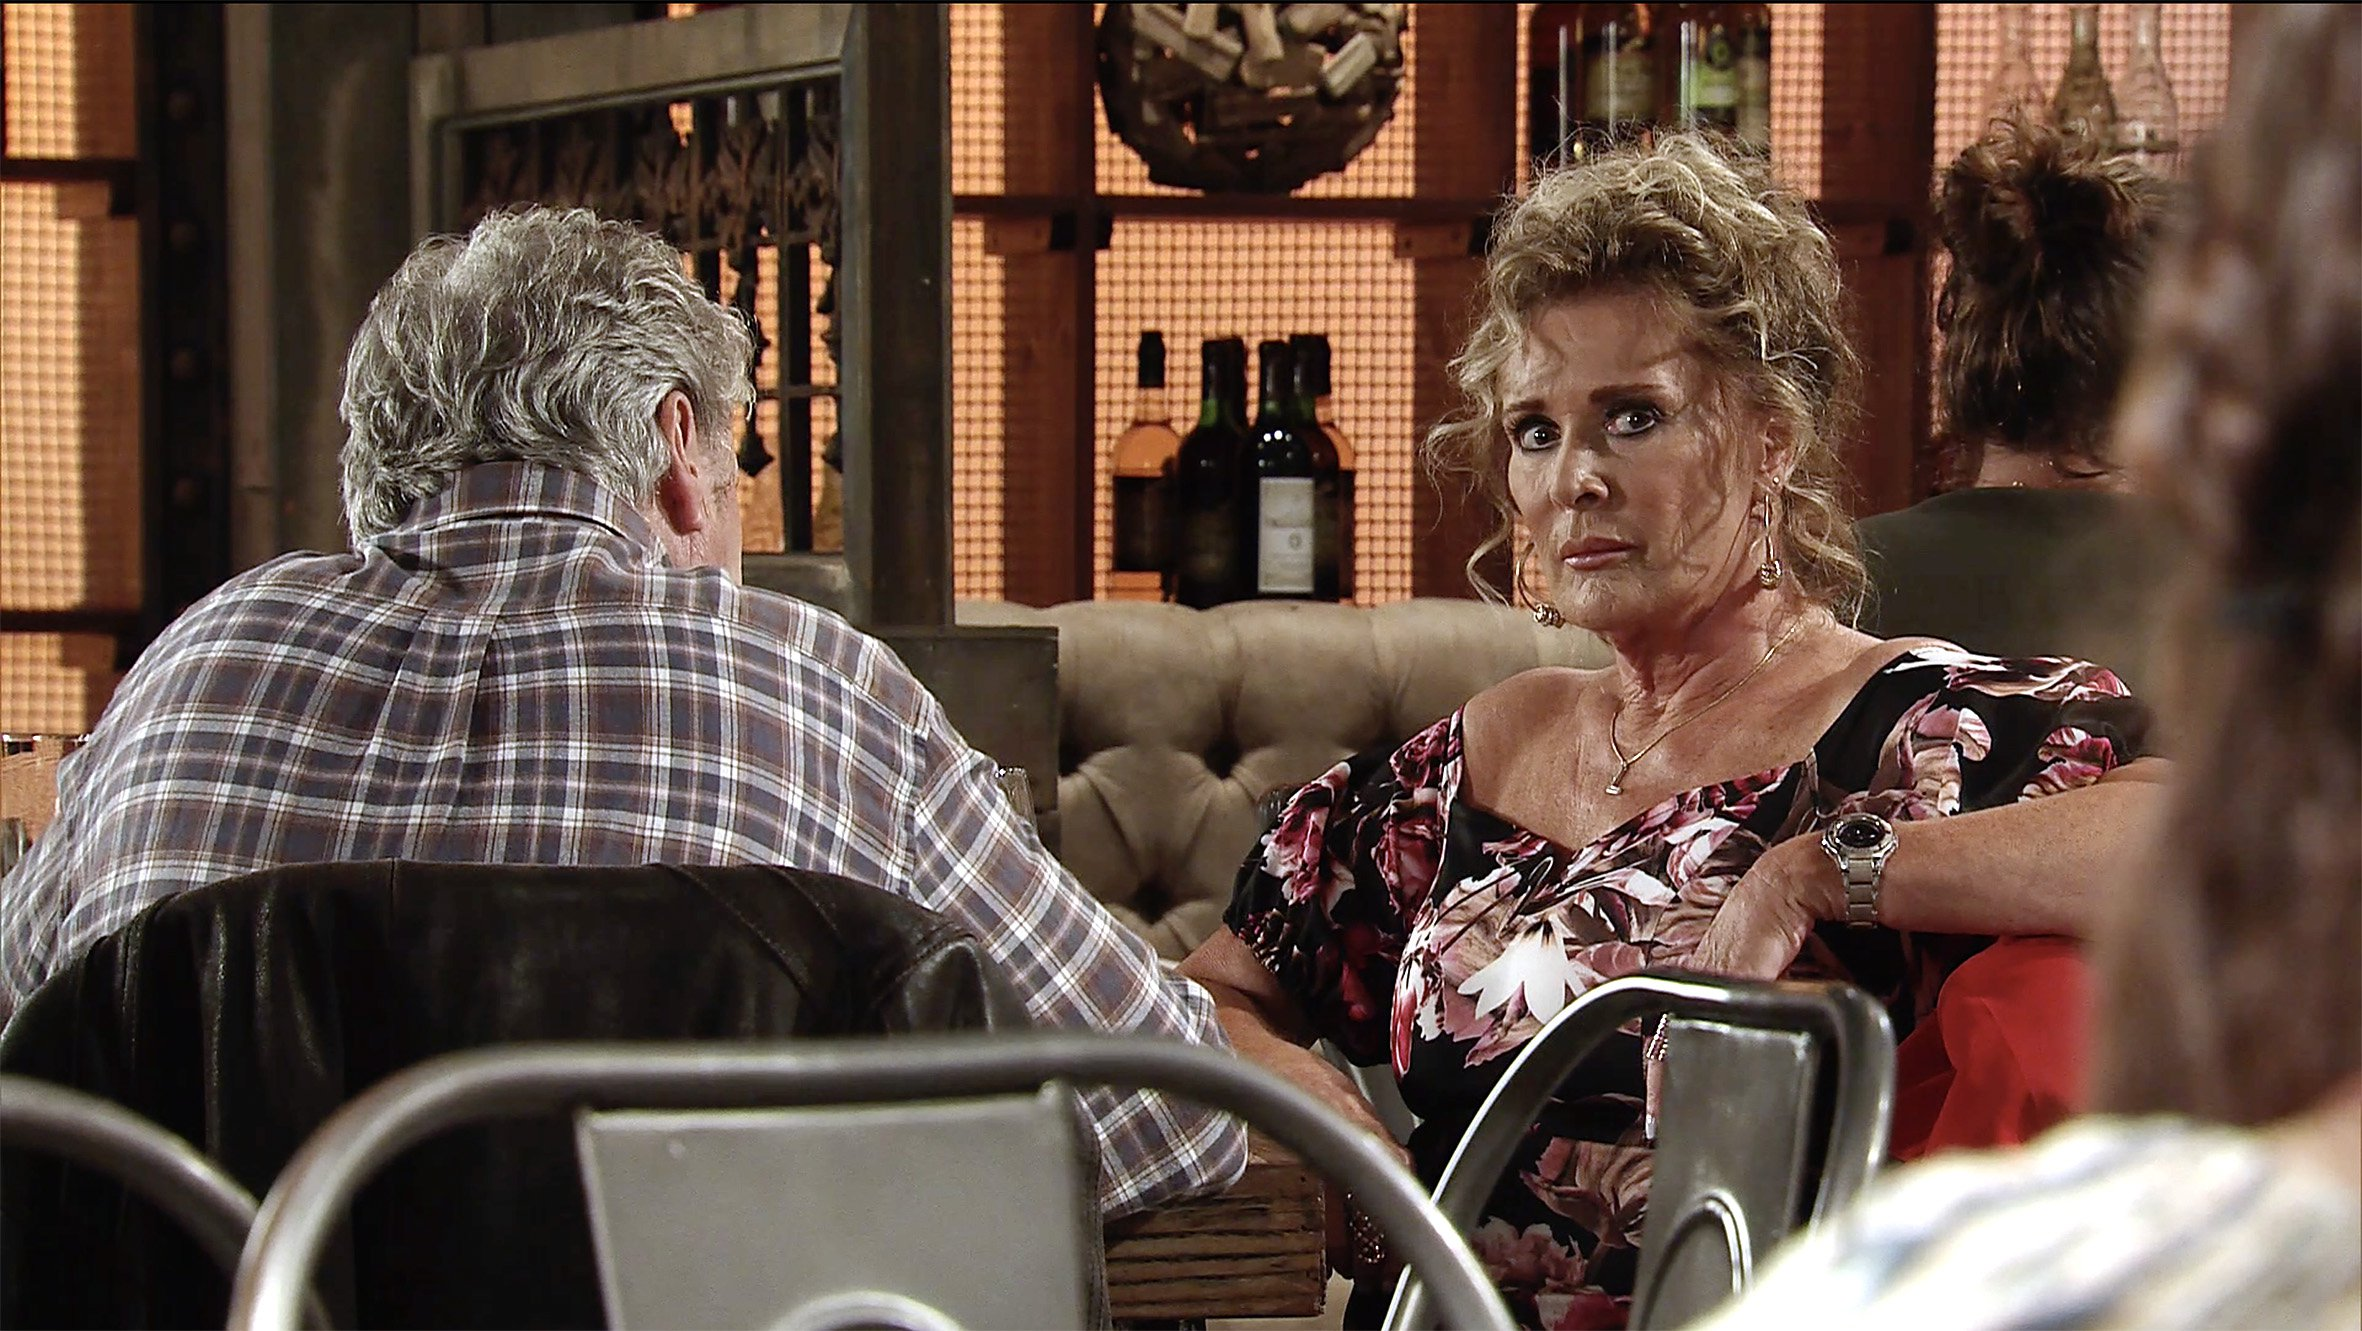 FROM ITV STRICT EMBARGO - No Use Before Tuesday 4th September 2018 Coronation Street - Ep 9556 Monday 10th September 2018 - 1st Ep Over lunch Jim McDonald [CHARLES LAWSON] admits to LizMcDonald [BEVERLEY CALLARD] the real reason for his return, he has some life changing news. The girl at the next table, Hannah [HANNAH ELLIS RYAN], is their daughter who they once knew as Katie. Liz is shocked to the core. Picture contact - david.crook@itv.com This photograph is (C) ITV Plc and can only be reproduced for editorial purposes directly in connection with the programme or event mentioned above, or ITV plc. Once made available by ITV plc Picture Desk, this photograph can be reproduced once only up until the transmission [TX] date and no reproduction fee will be charged. Any subsequent usage may incur a fee. This photograph must not be manipulated [excluding basic cropping] in a manner which alters the visual appearance of the person photographed deemed detrimental or inappropriate by ITV plc Picture Desk. This photograph must not be syndicated to any other company, publication or website, or permanently archived, without the express written permission of ITV Plc Picture Desk. Full Terms and conditions are available on the website www.itvpictures.com